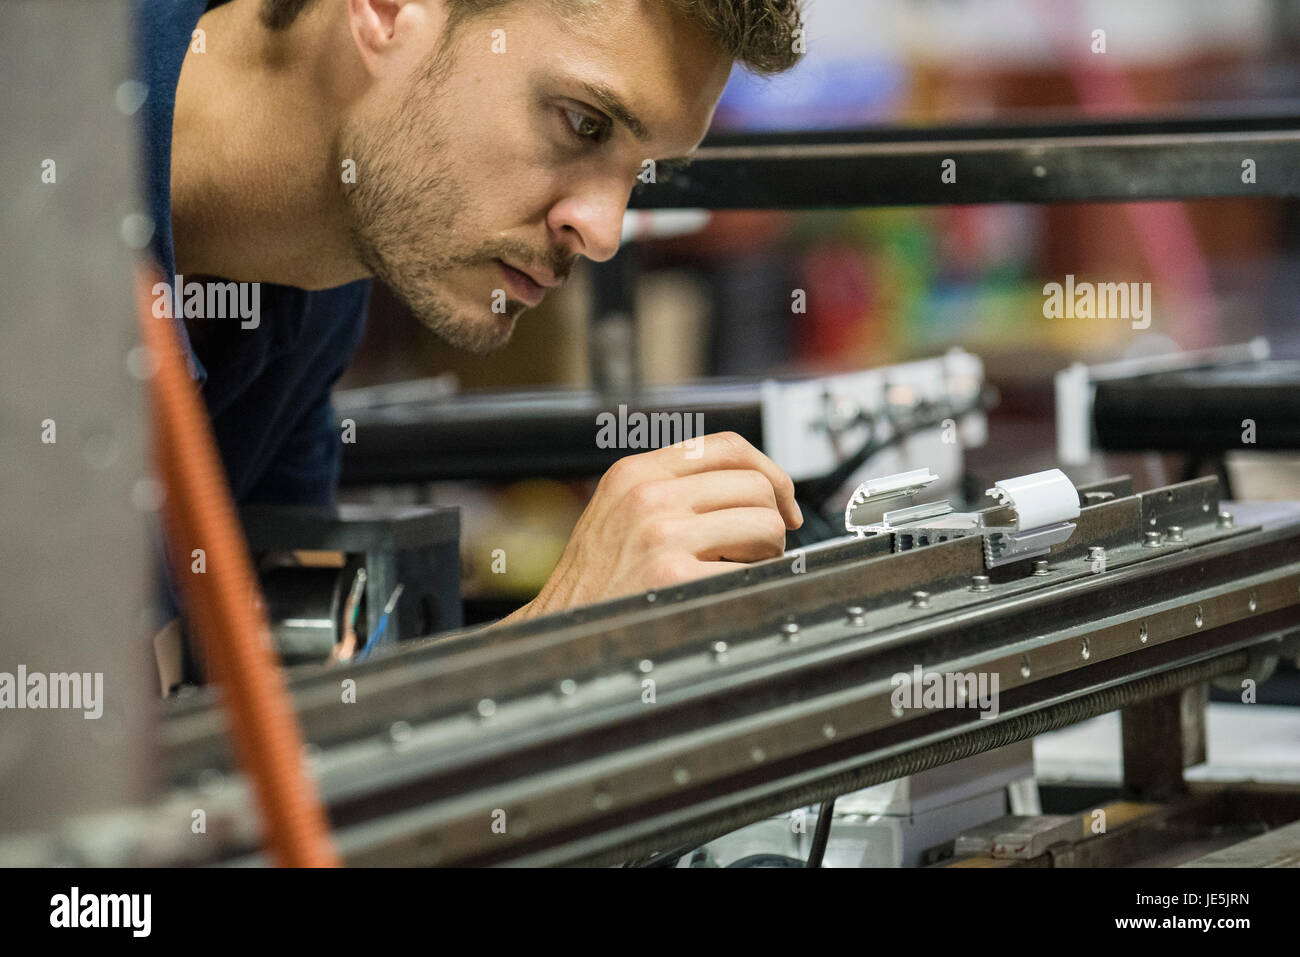 Man working in factory - Stock Image